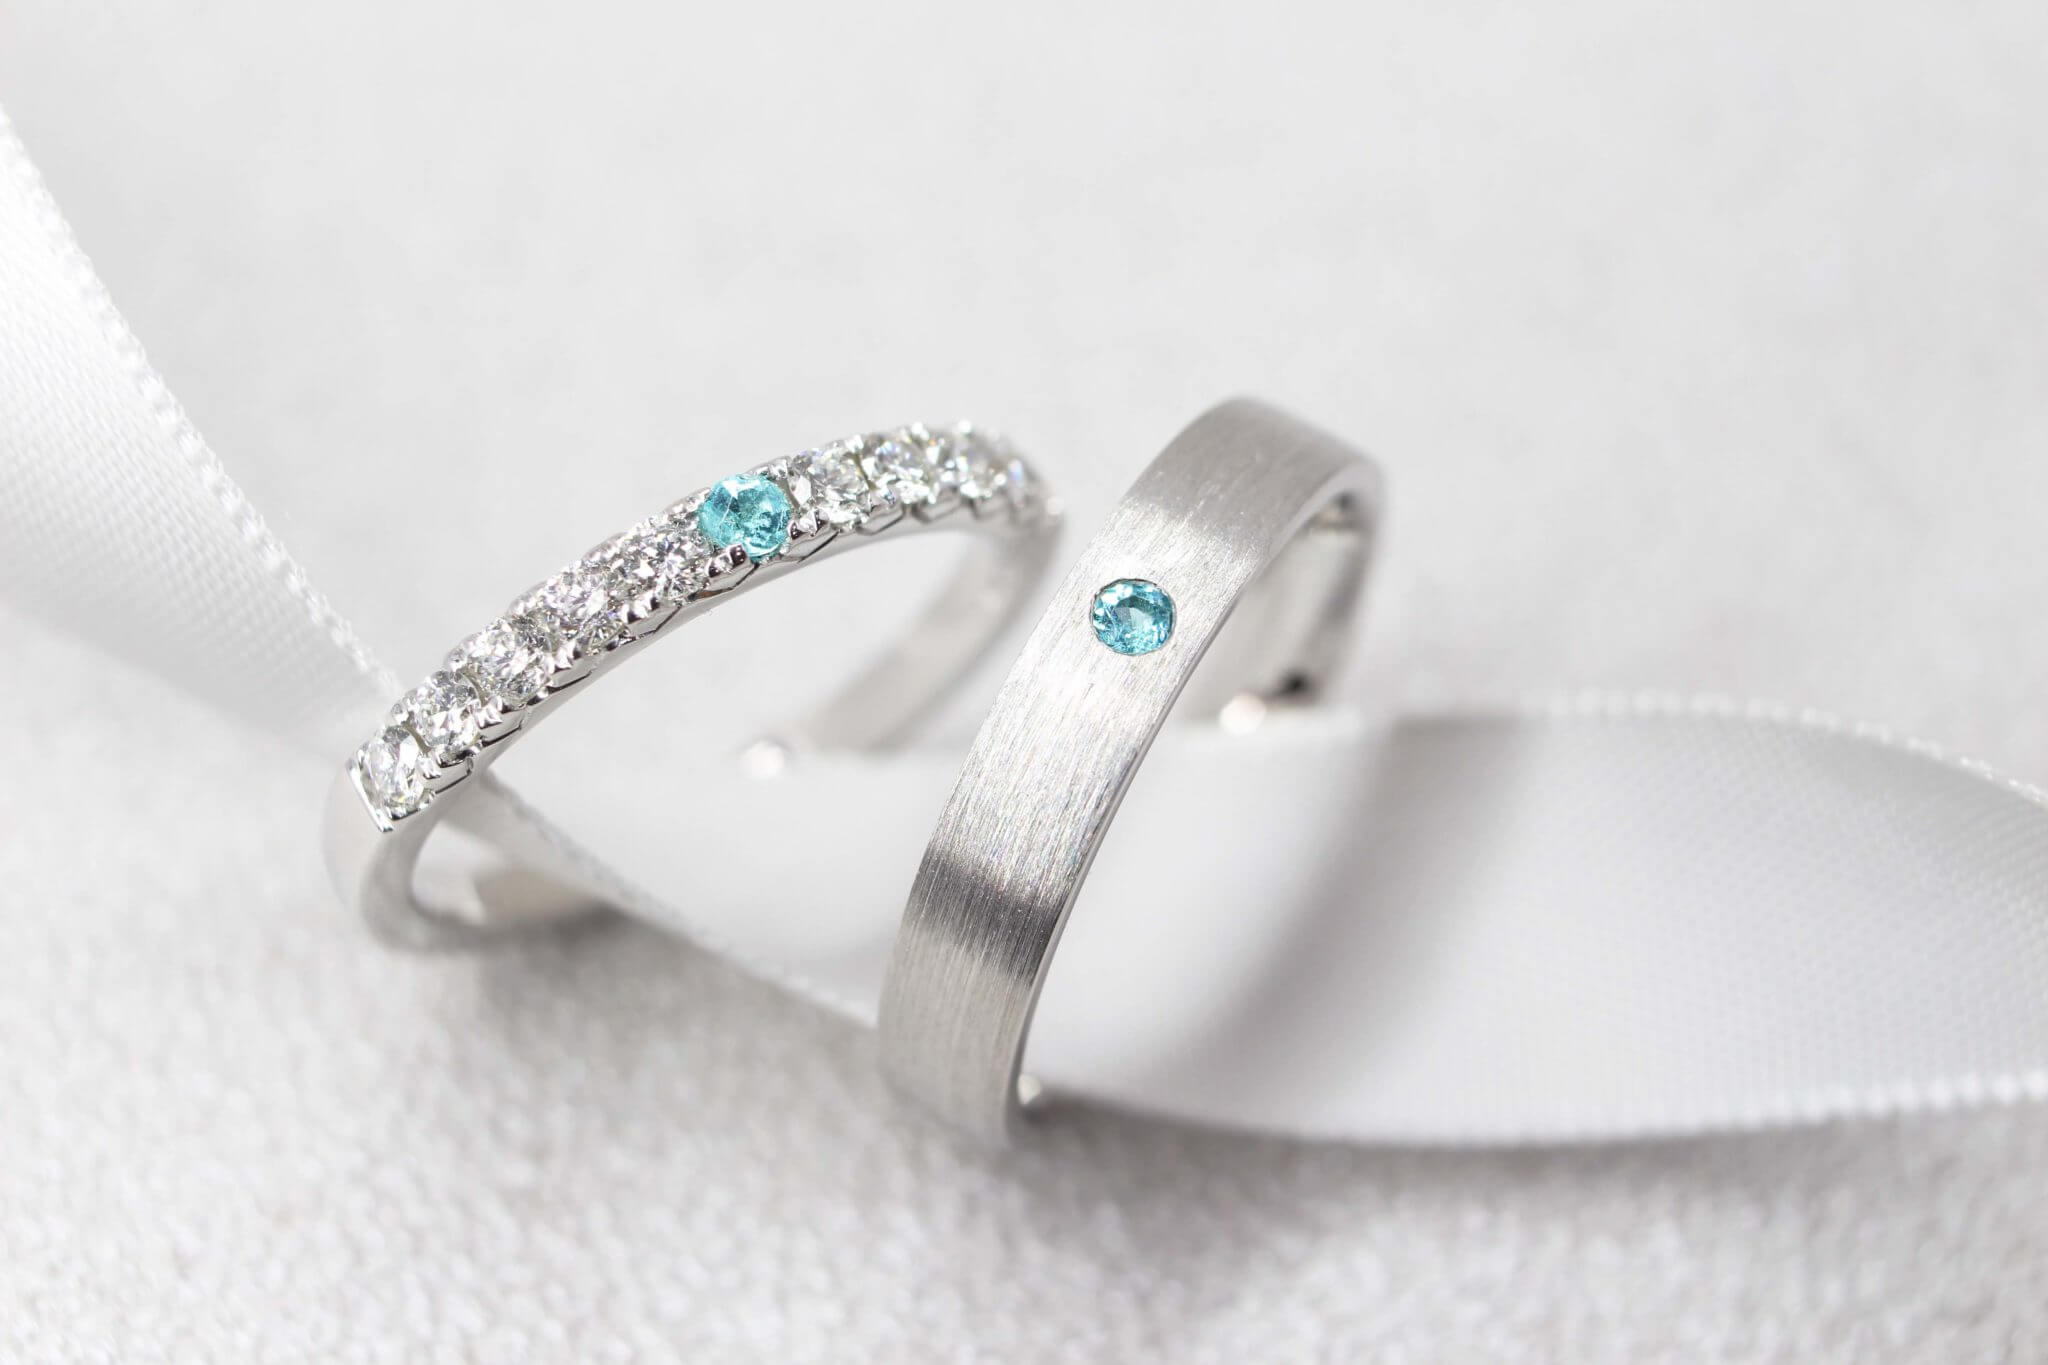 Brazil Paraiba Wedding Bands